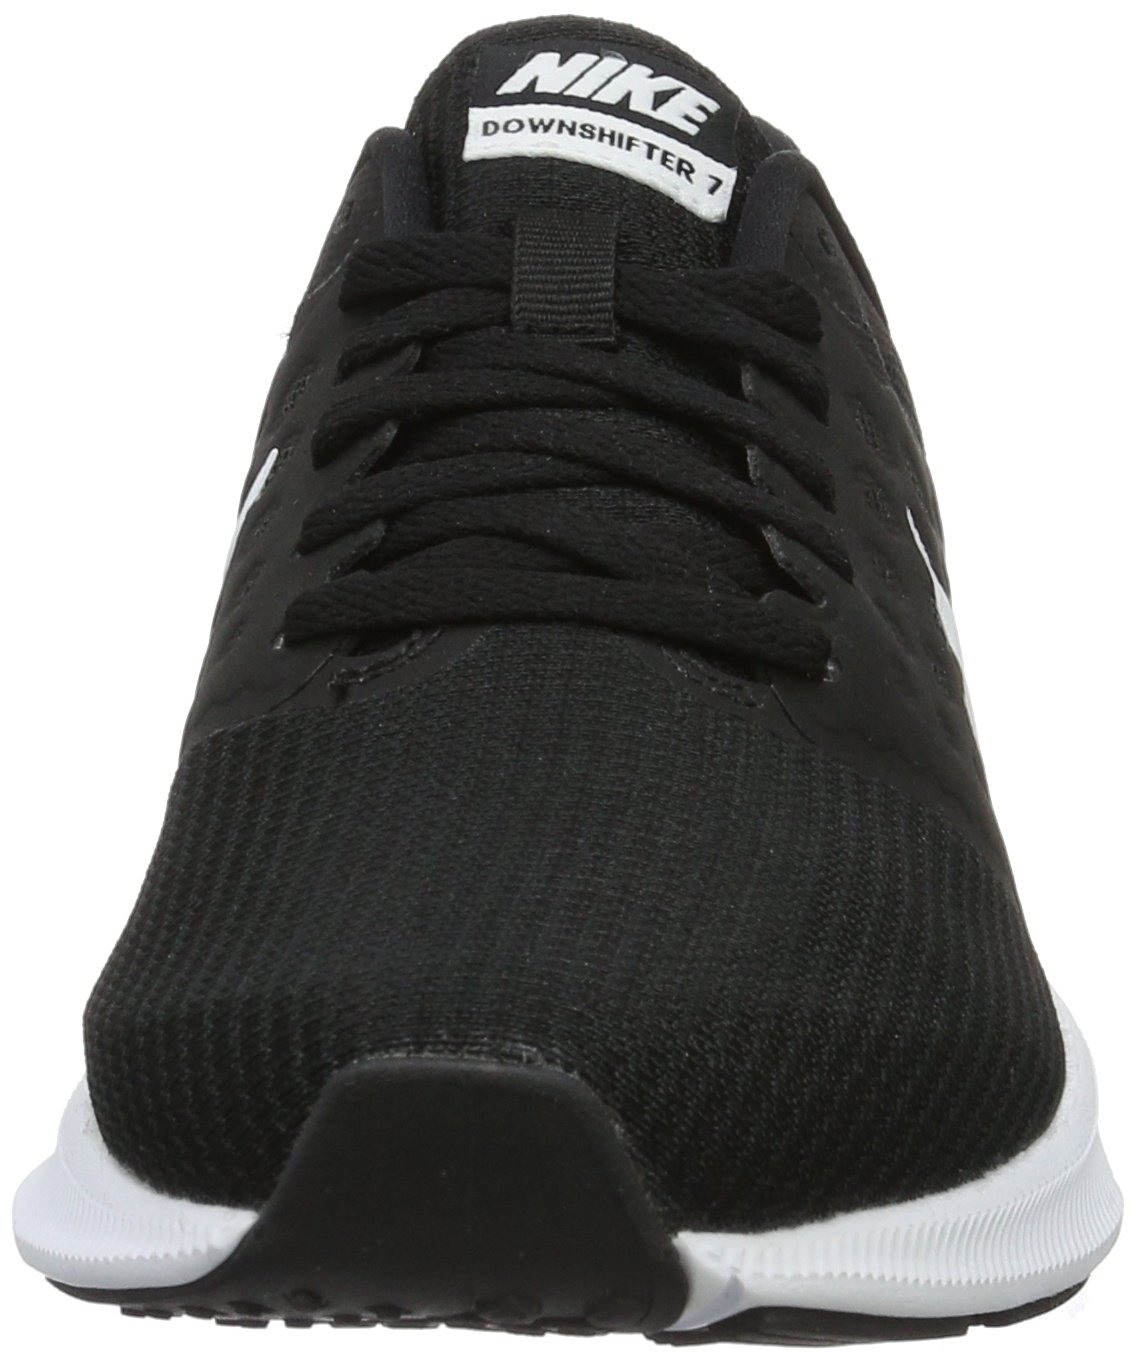 NIKE Women's Downshifter 10 7 B006K198AQ 10 Downshifter Wide US|Black/White 4a7a35